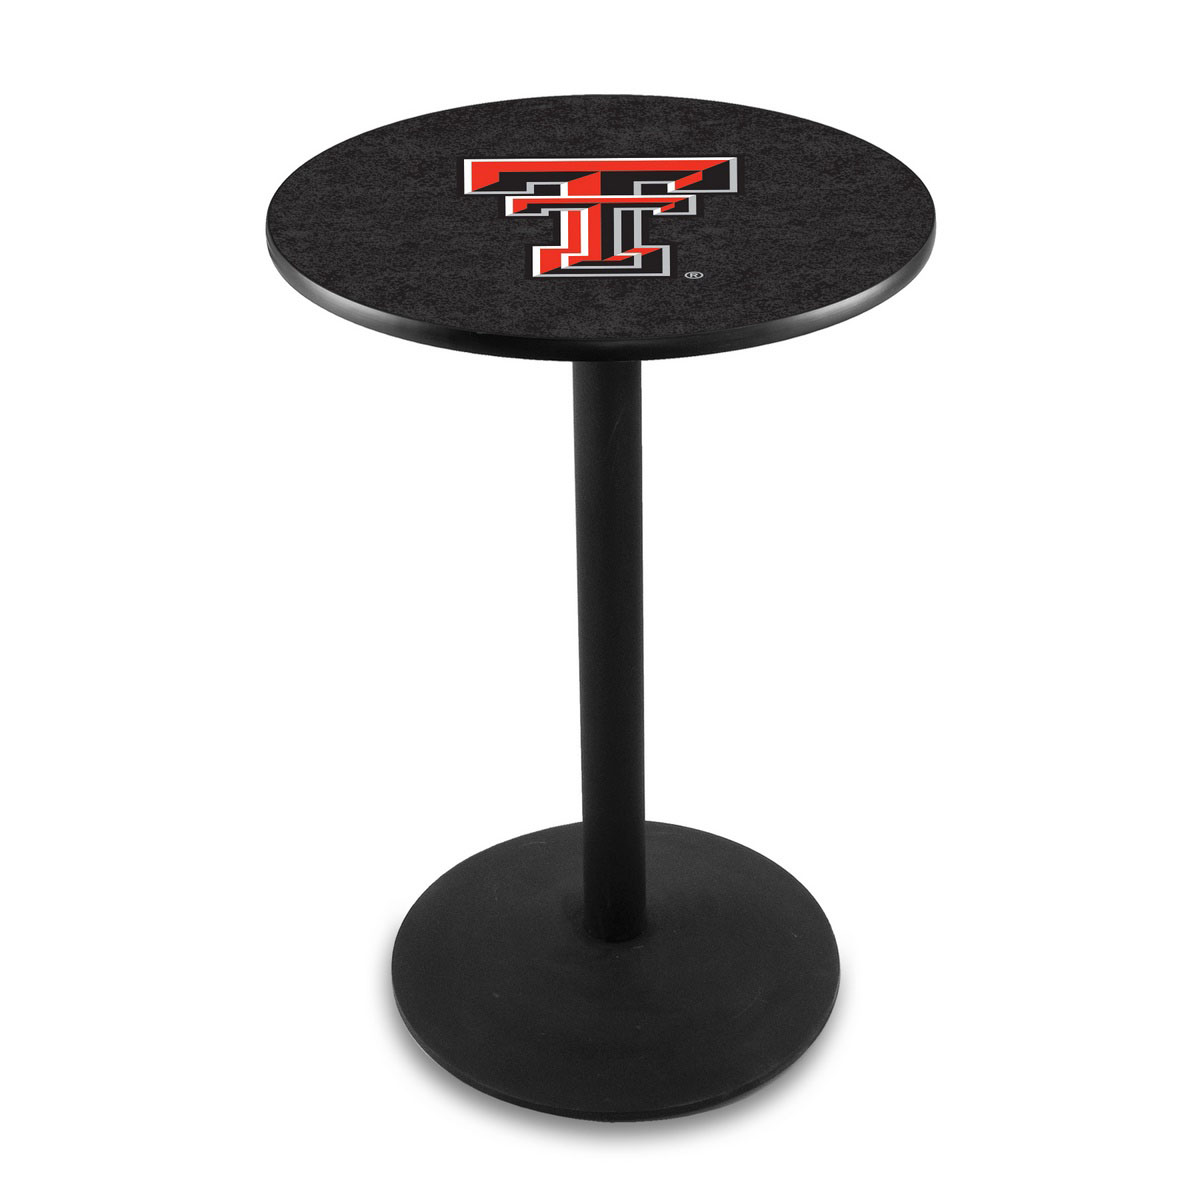 High-class Texas Tech University Logo Pub Bar Table Round Stand Product Photo